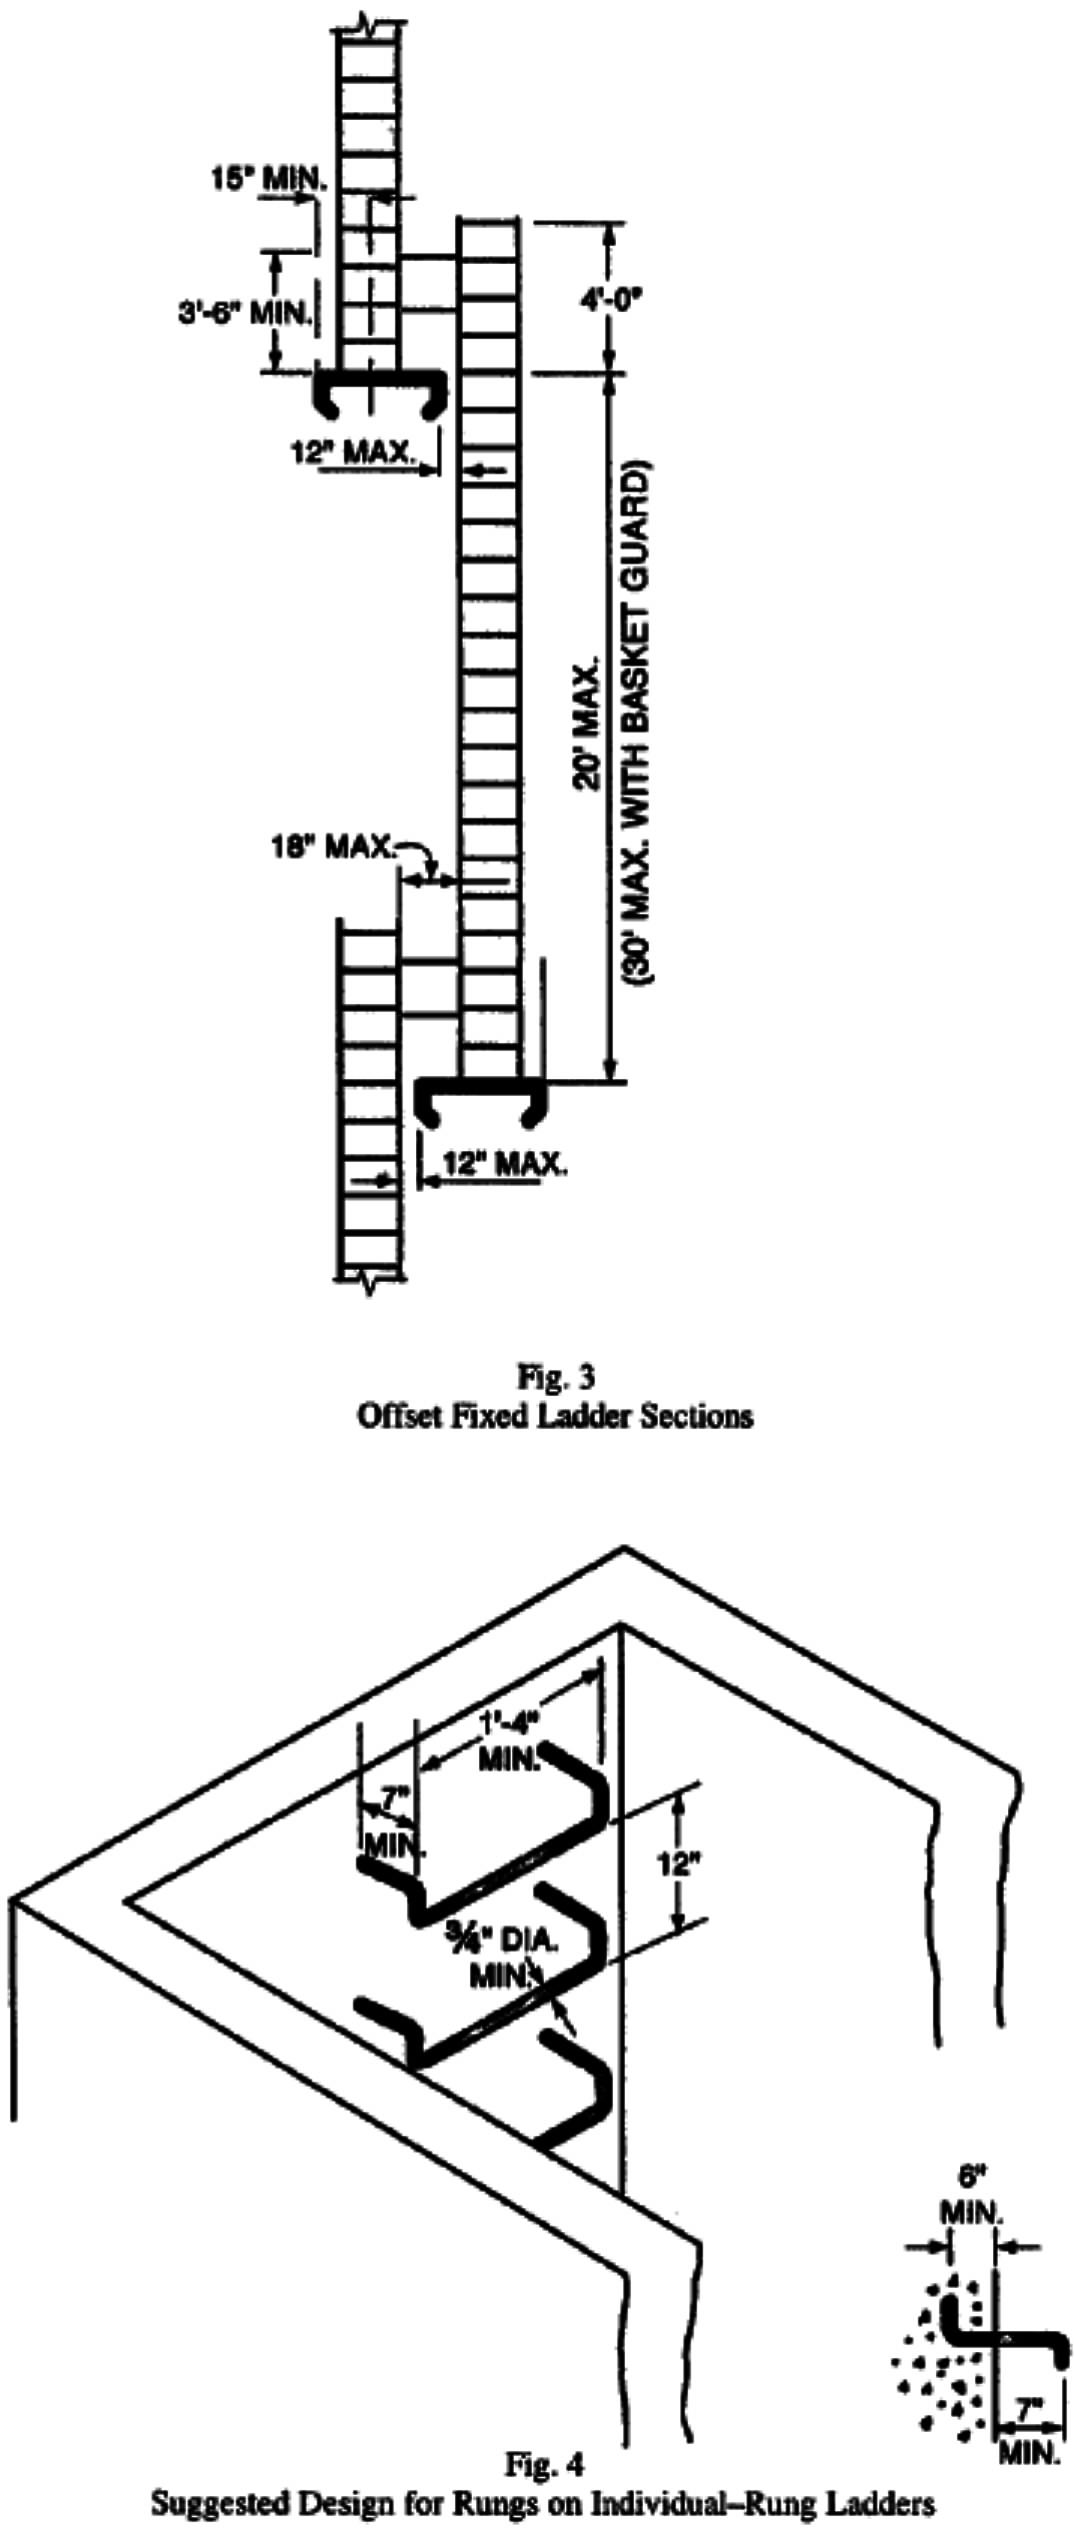 California Code Of Regulations  Title 8  Section 3277  Fixed Ladders